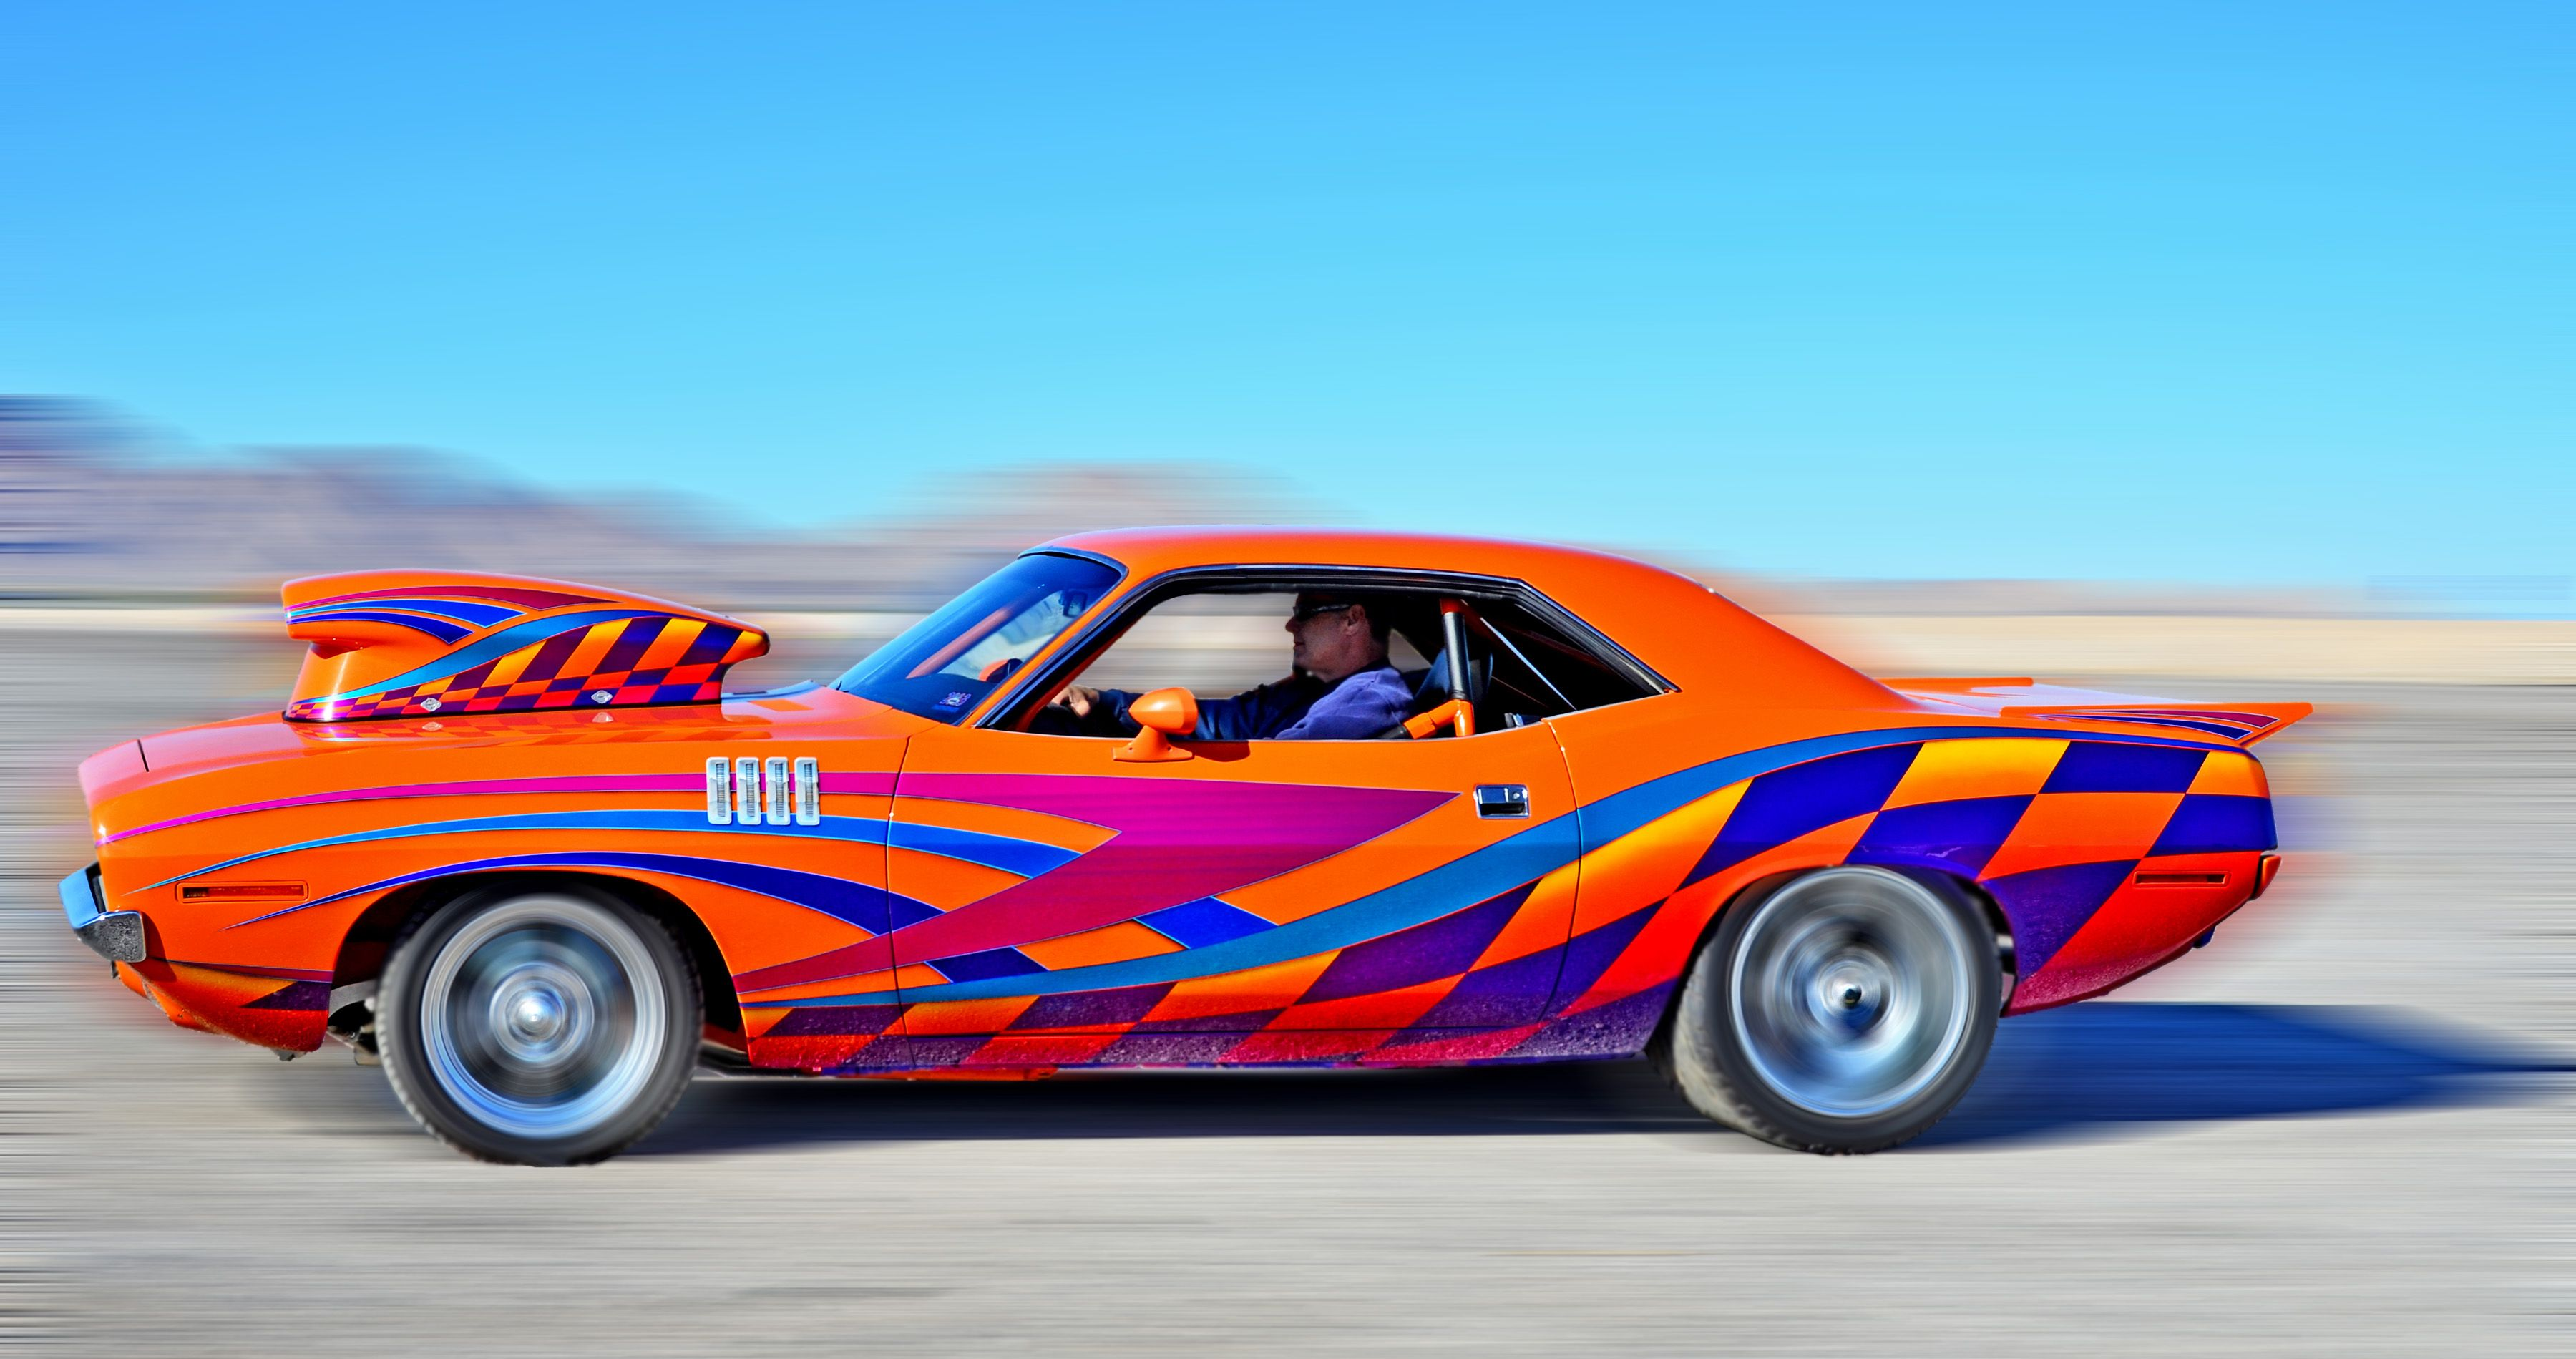 1971 Plymouth Barracuda won first place in the \